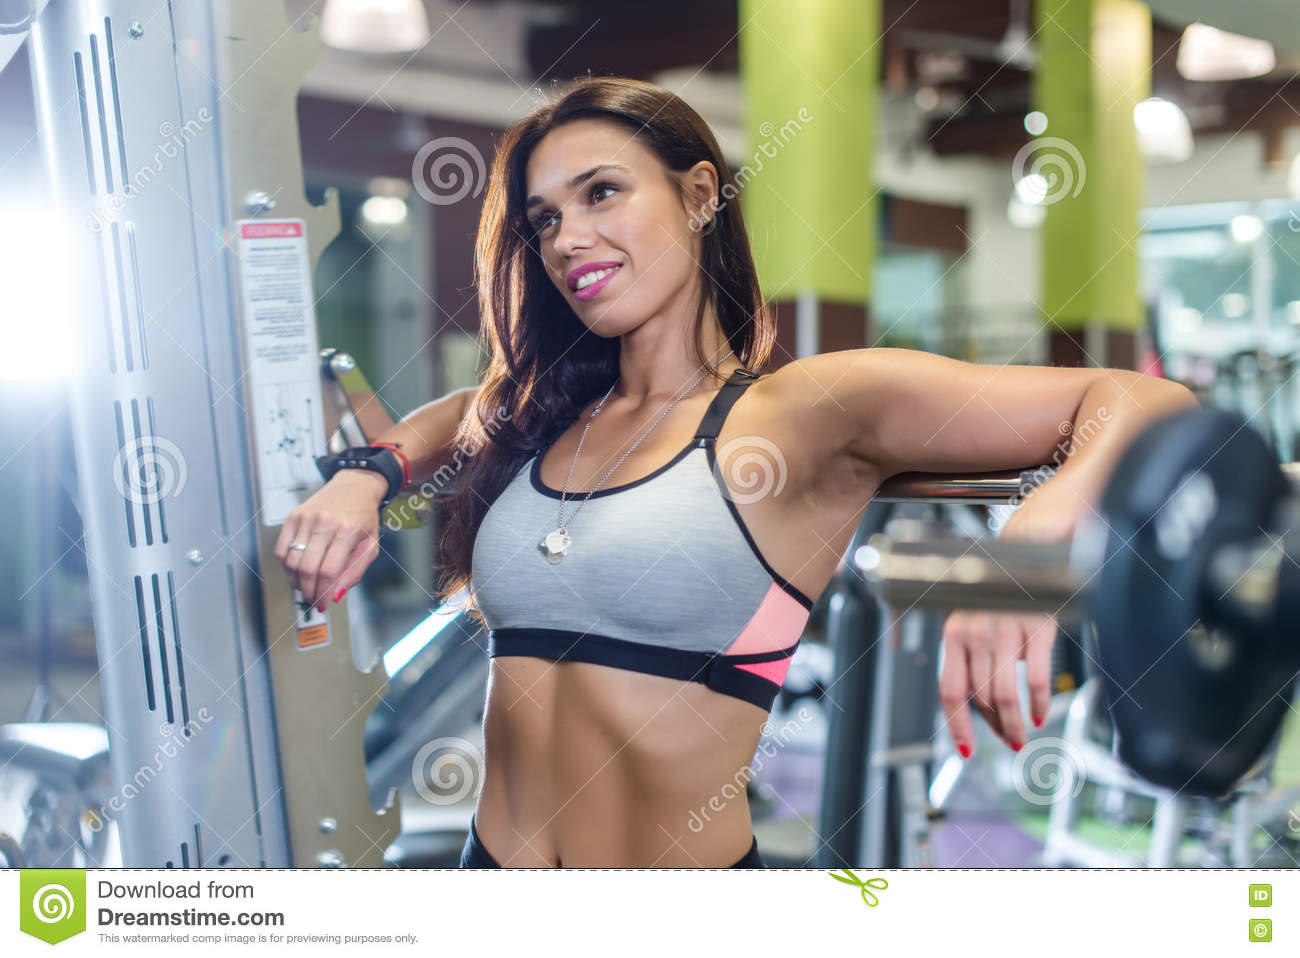 Fit Woman In A Gym Looking At Mirror Working With Weights Stock Image Image Of Body Athletic 77114687 Your woman gym stock images are ready. dreamstime com